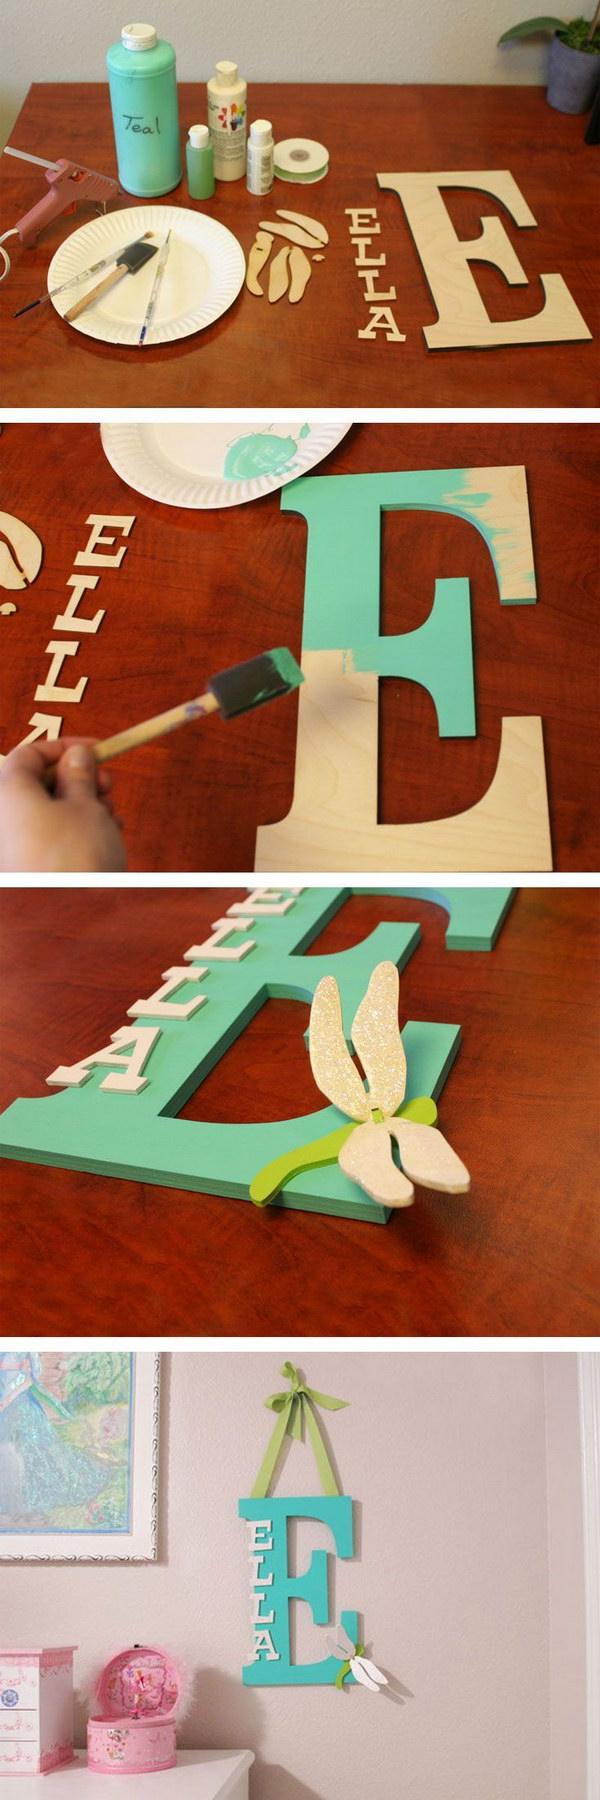 Painted Wooden Letter.